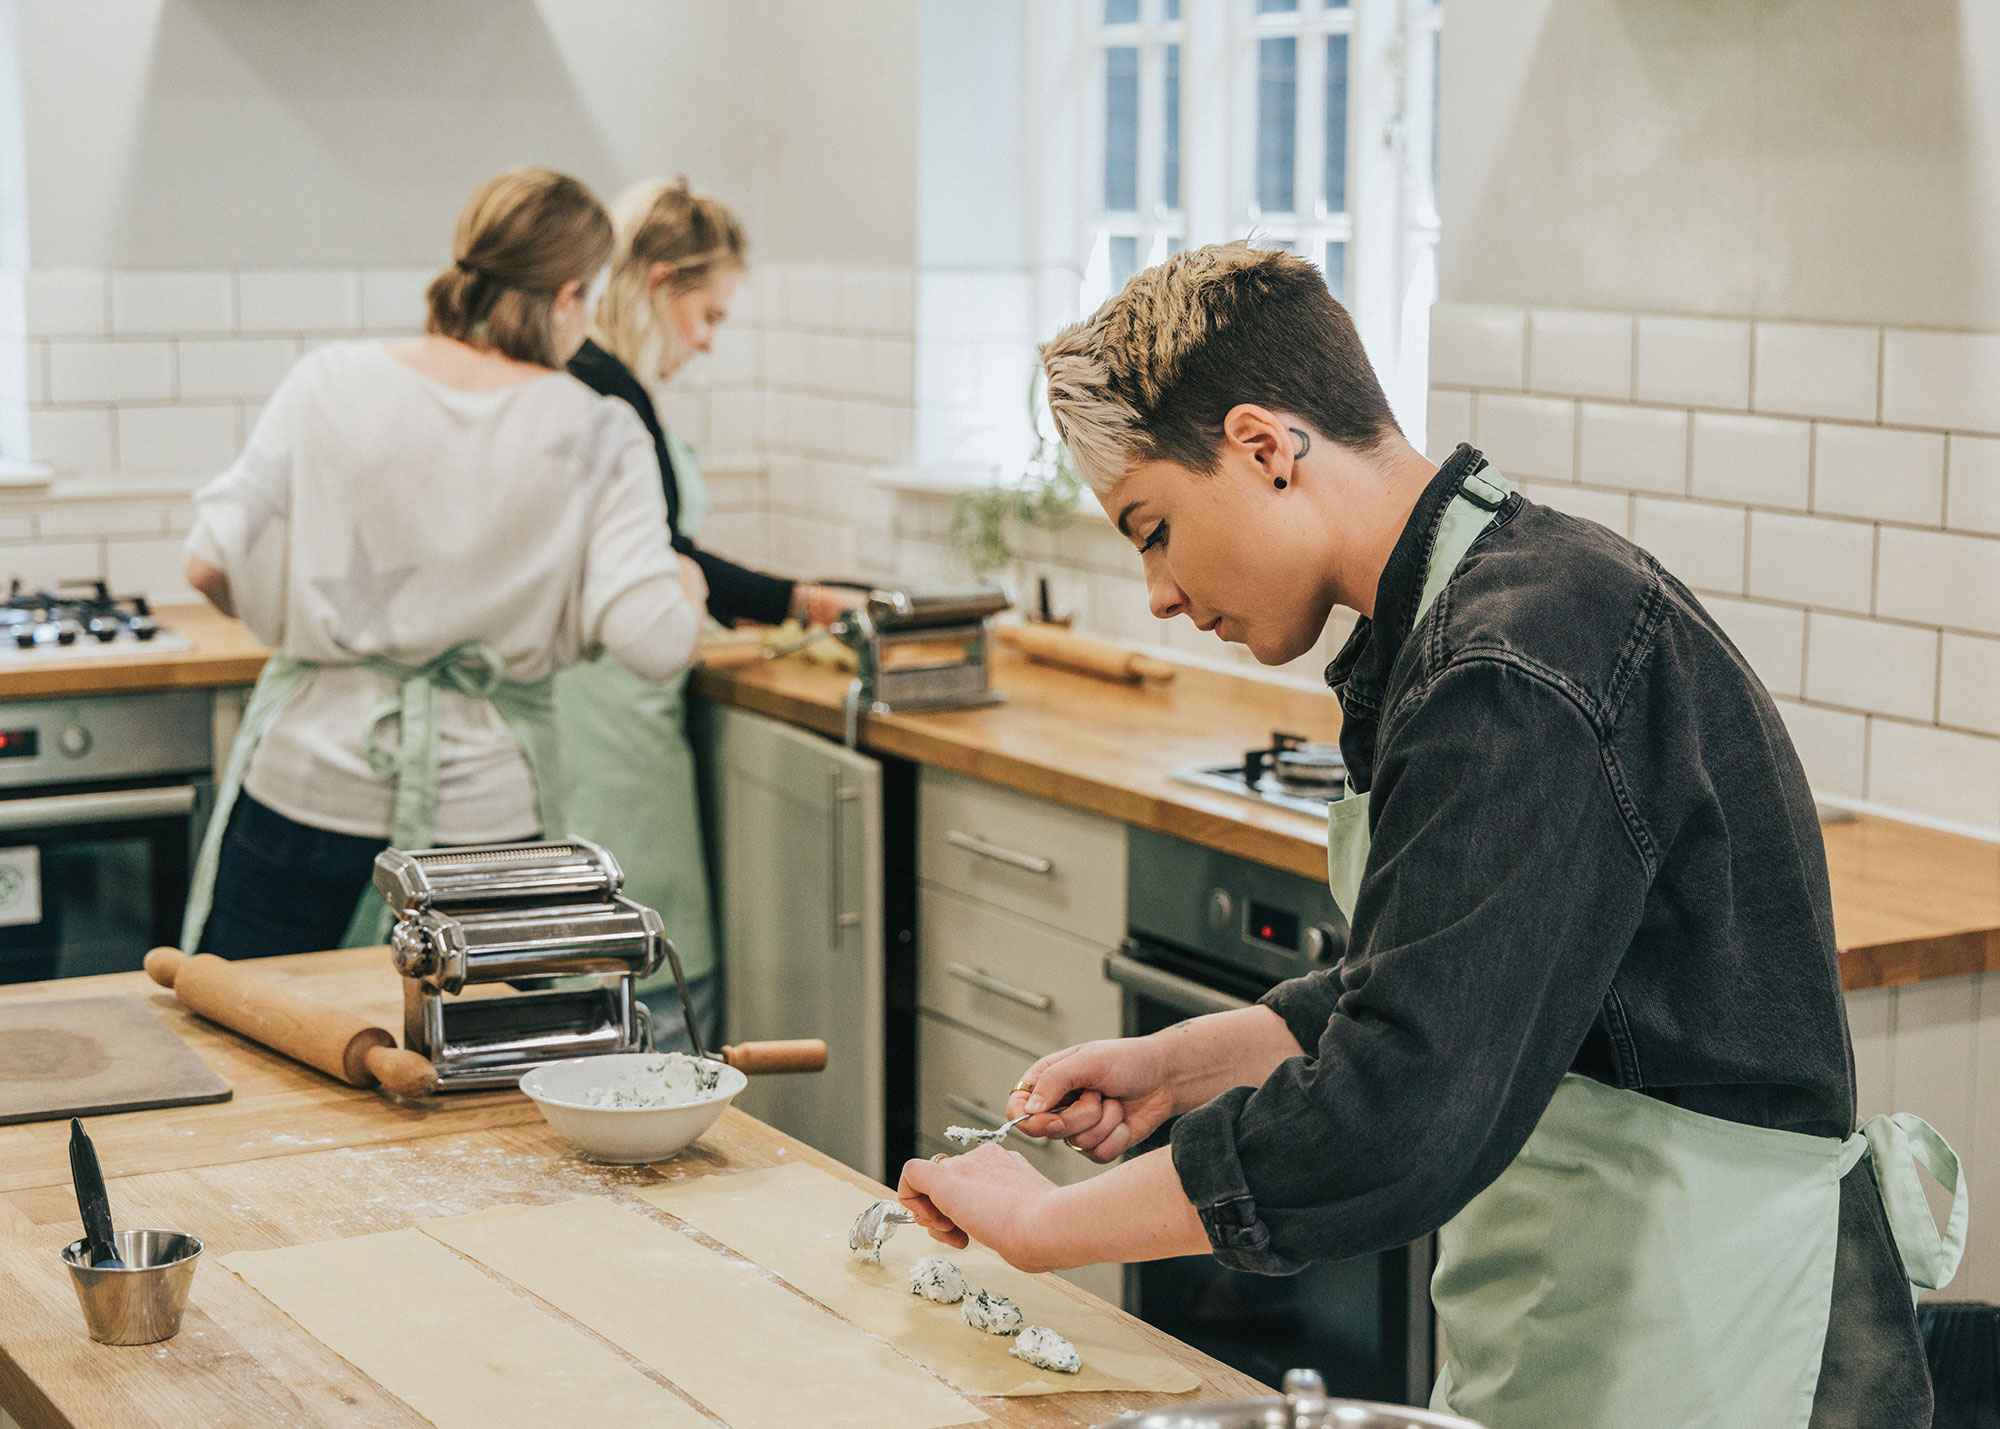 Residential Gold DofE Cookery Course: 5 Days